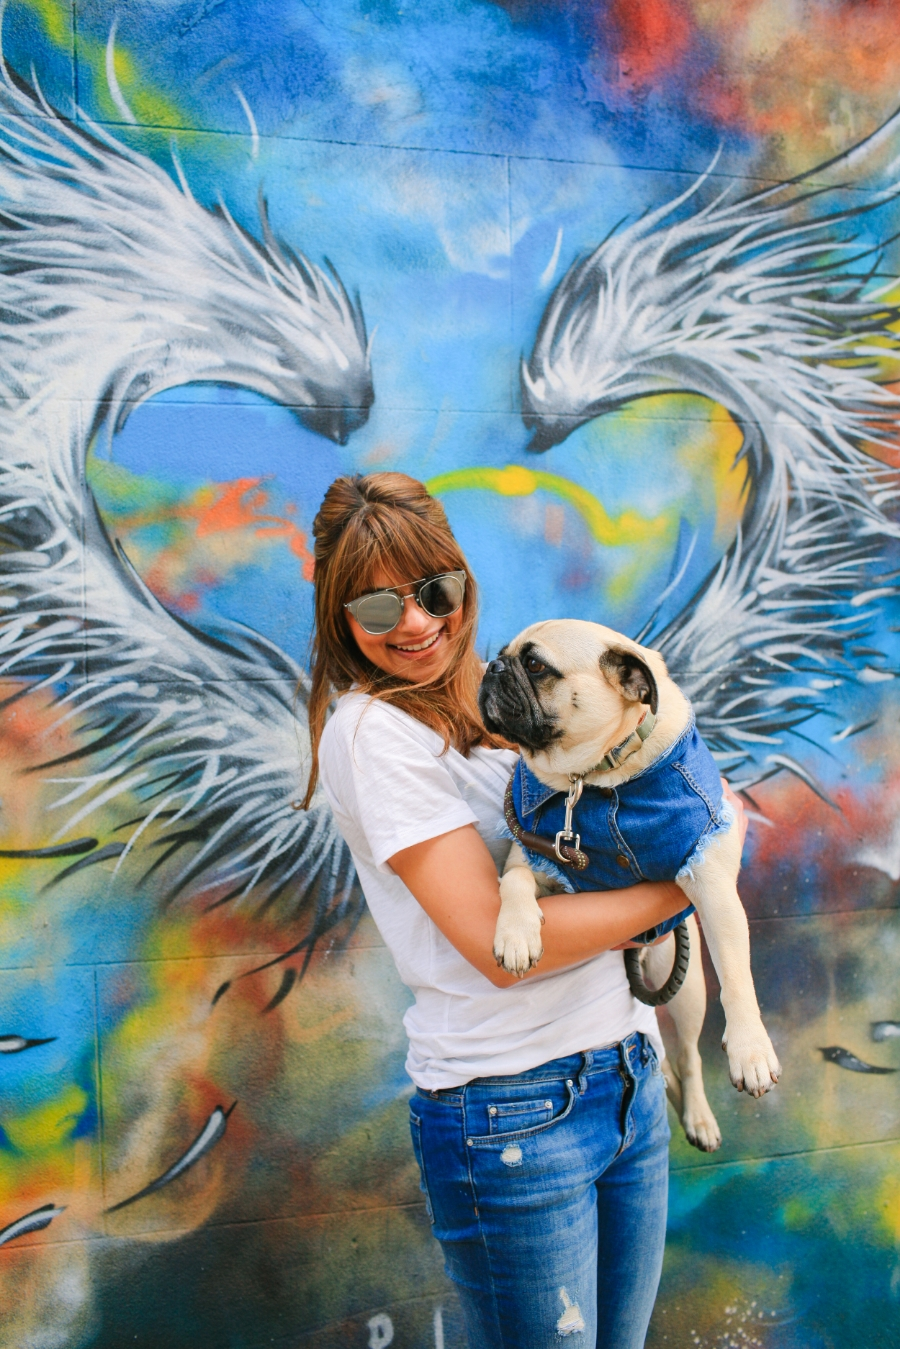 dogblog-petfashionblog-denim-pethaus-denimfordogs-streetart-london-humanandhound-coolpups-dogsinclothes-pugswag-honeyidressedthepug-shoreditch-